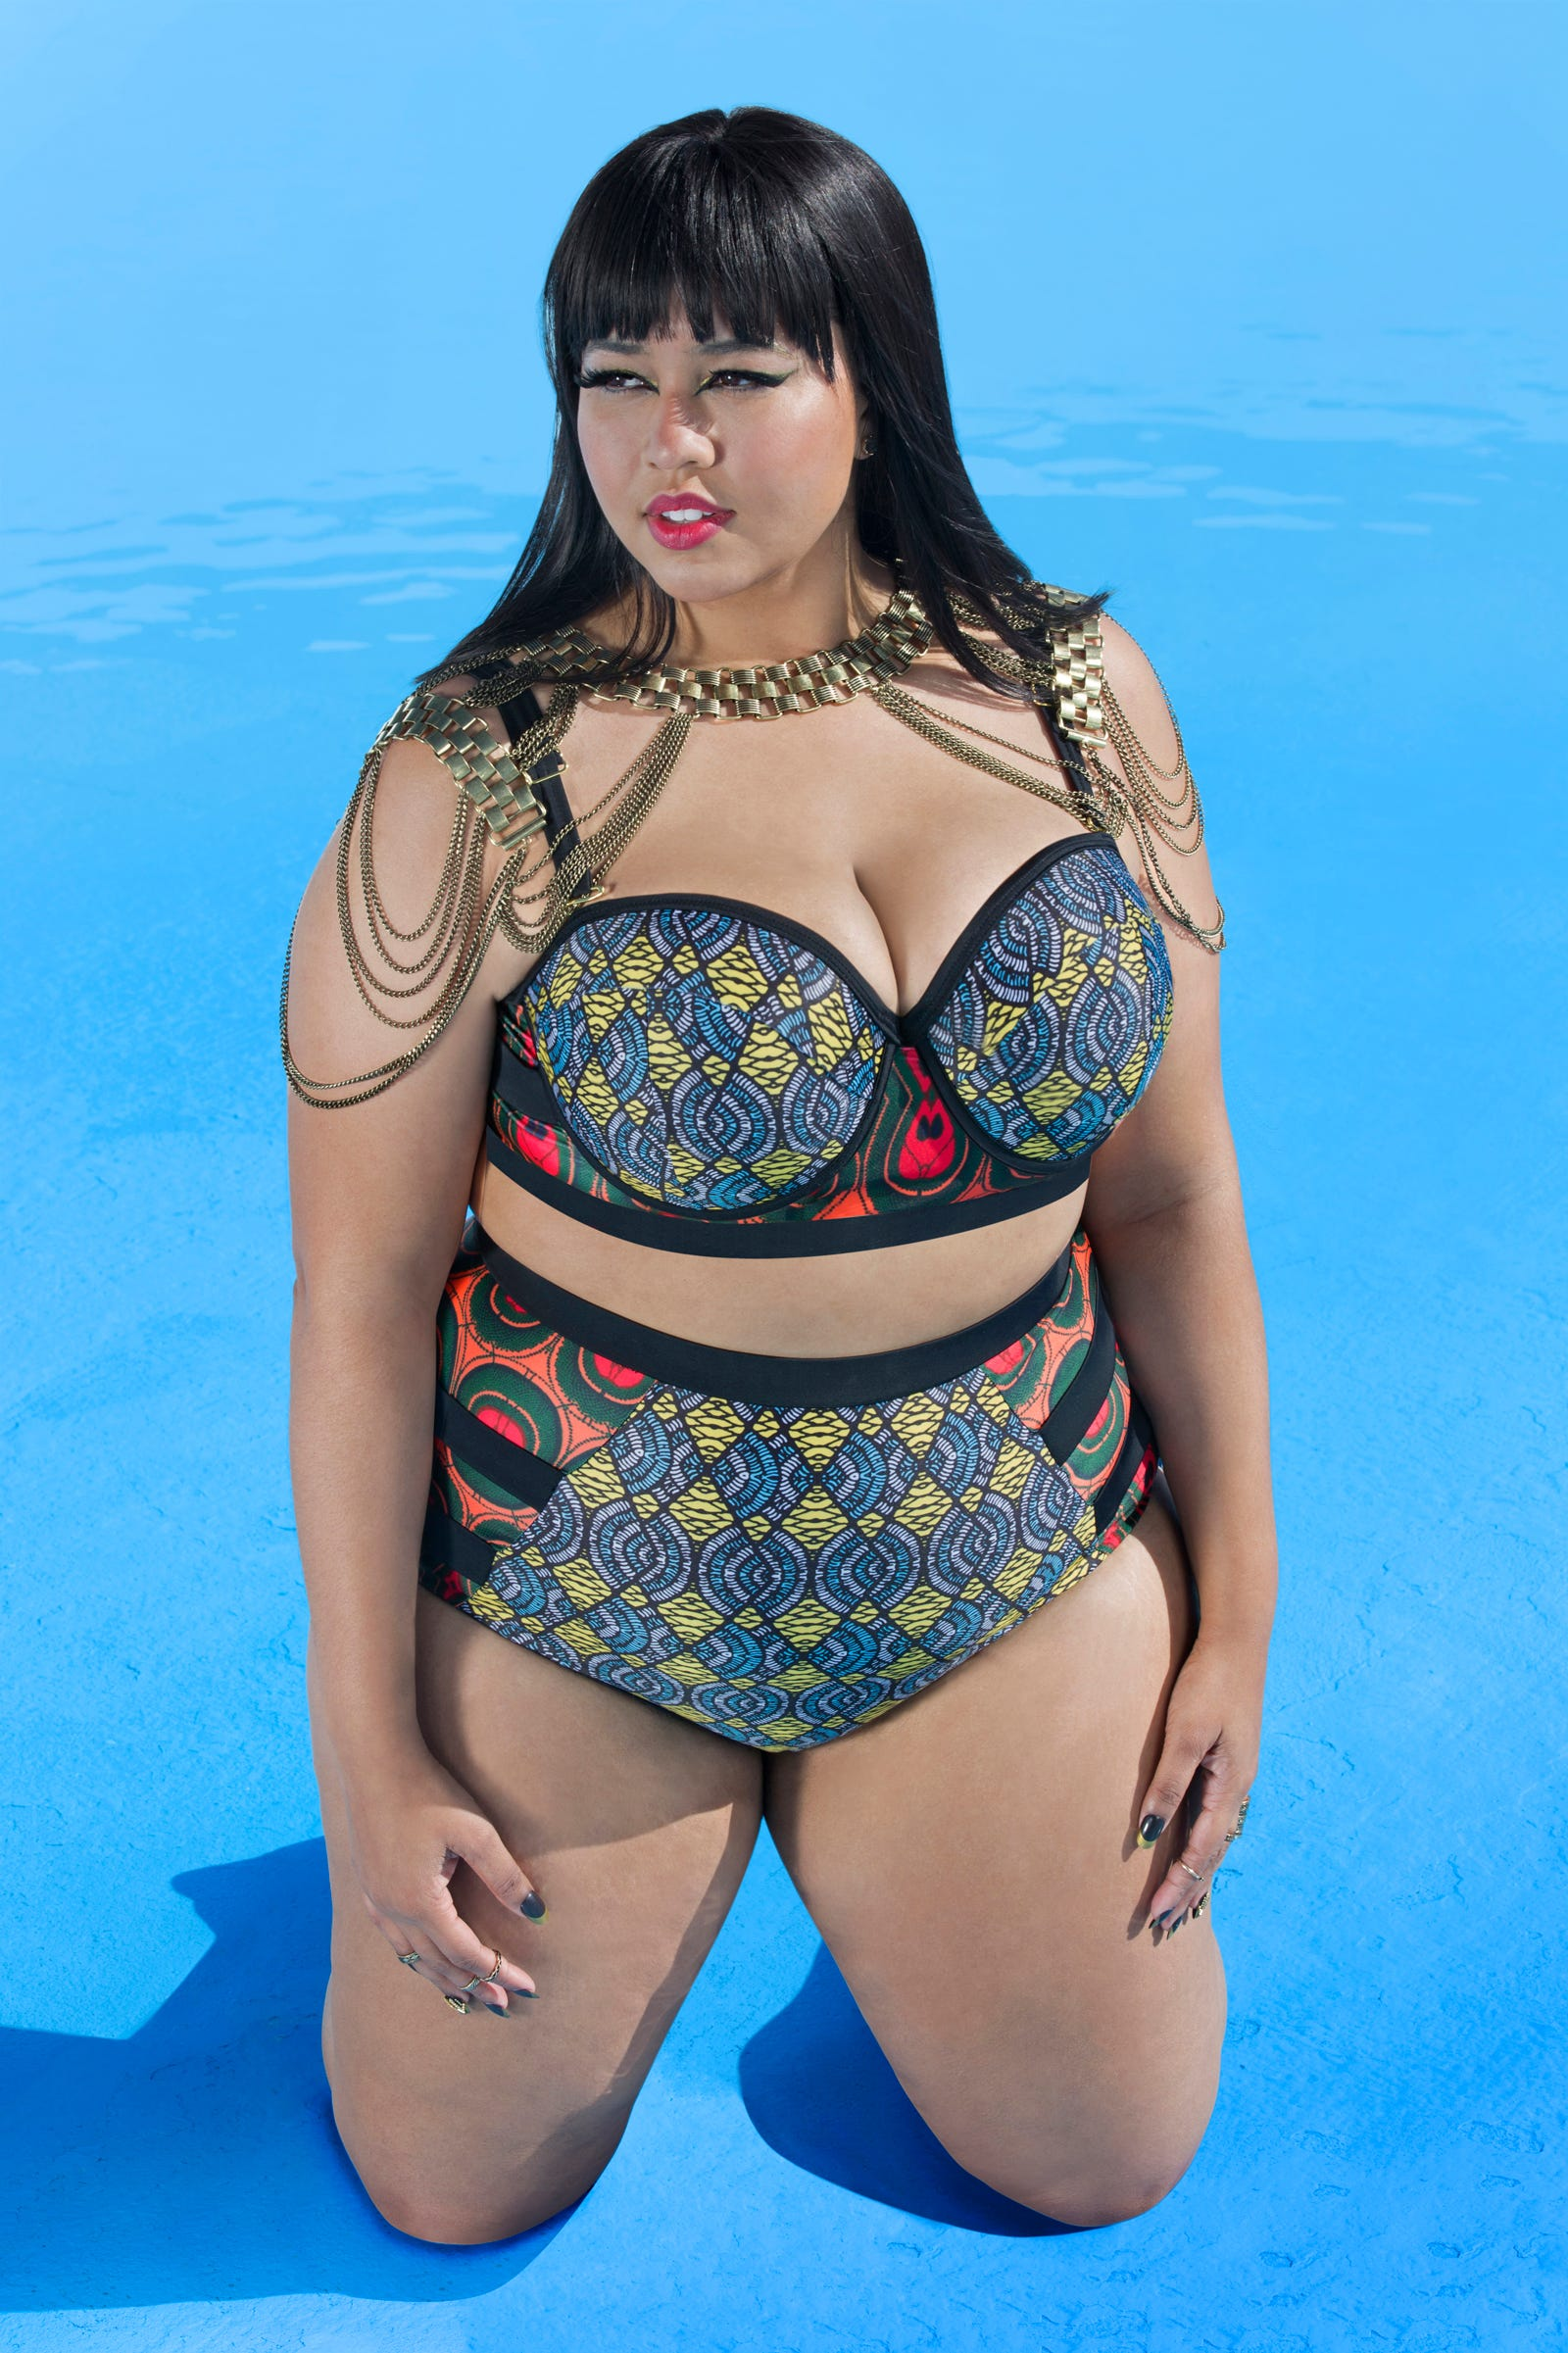 d452eaf1673 Gabi Fresh Swimsuitsforall Swimsuit Collection